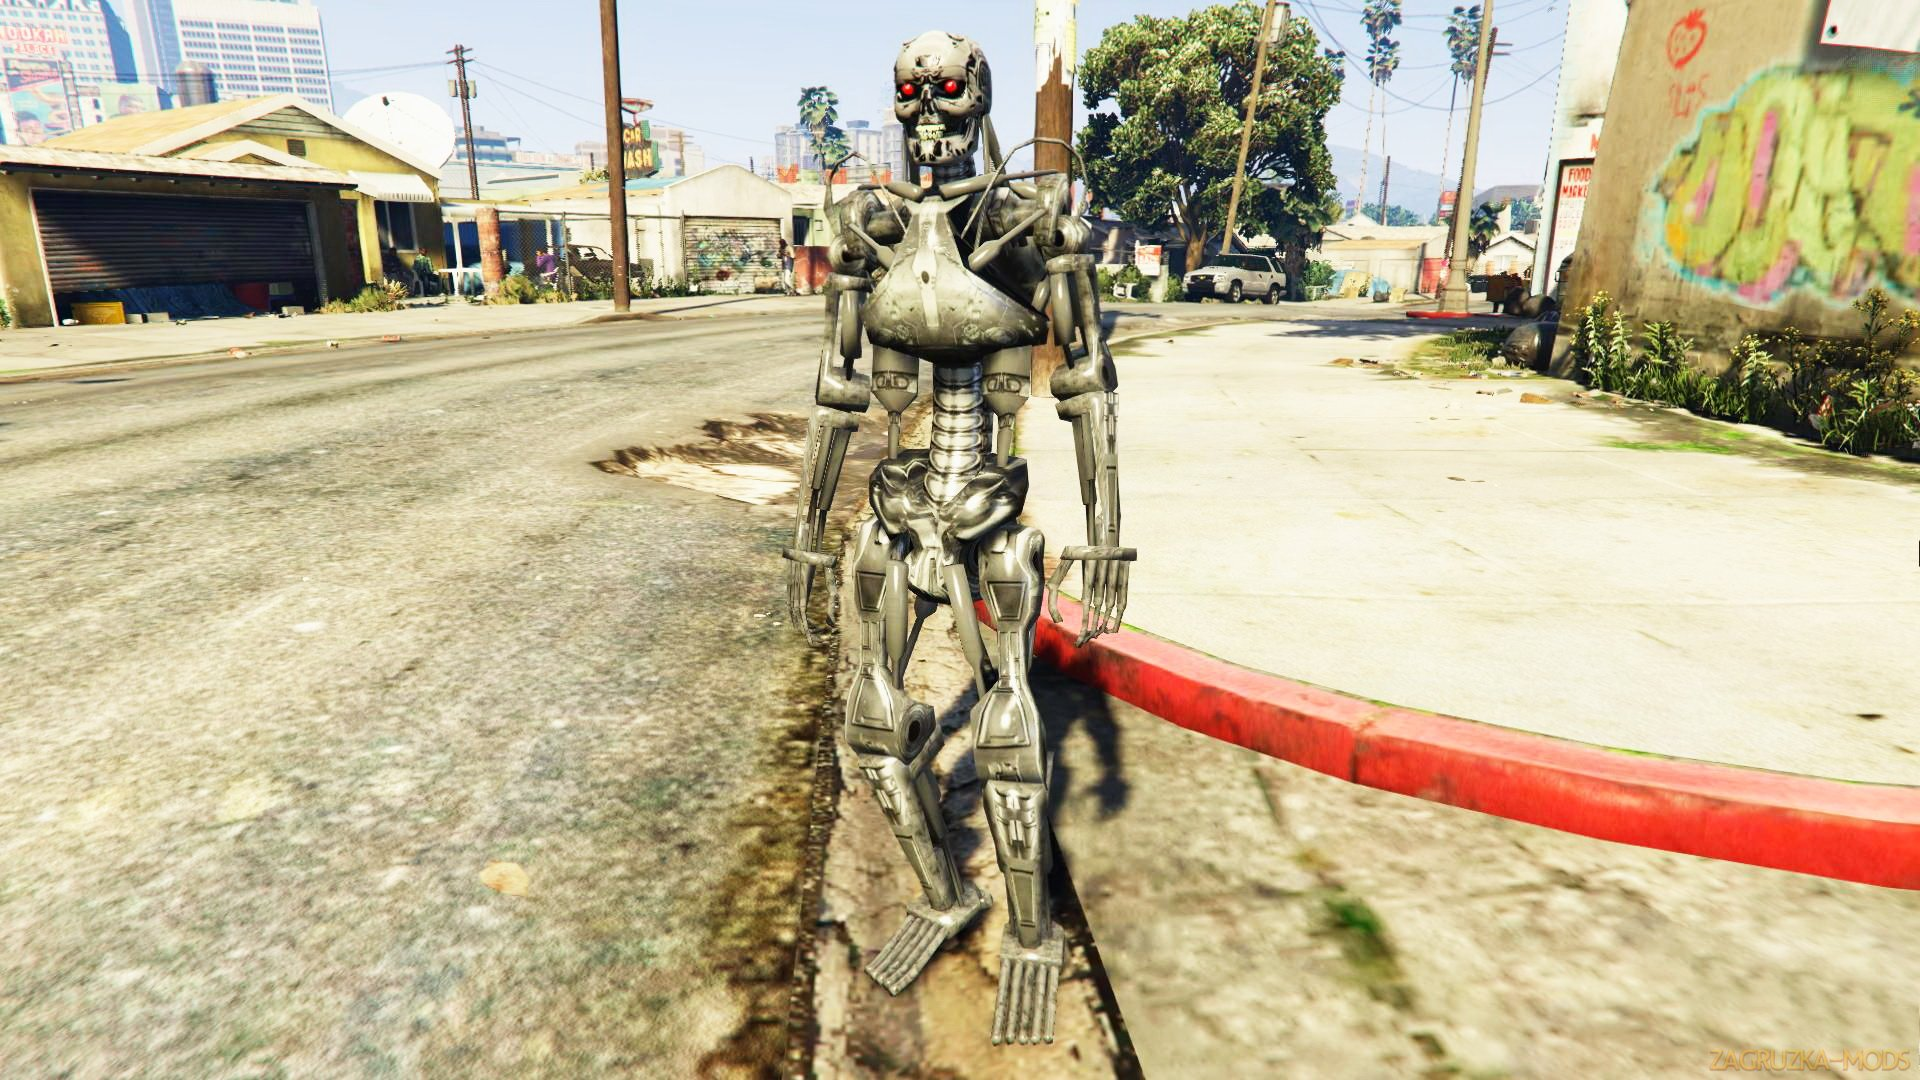 Terminator T-800 Mod v1.0 for GTA 5